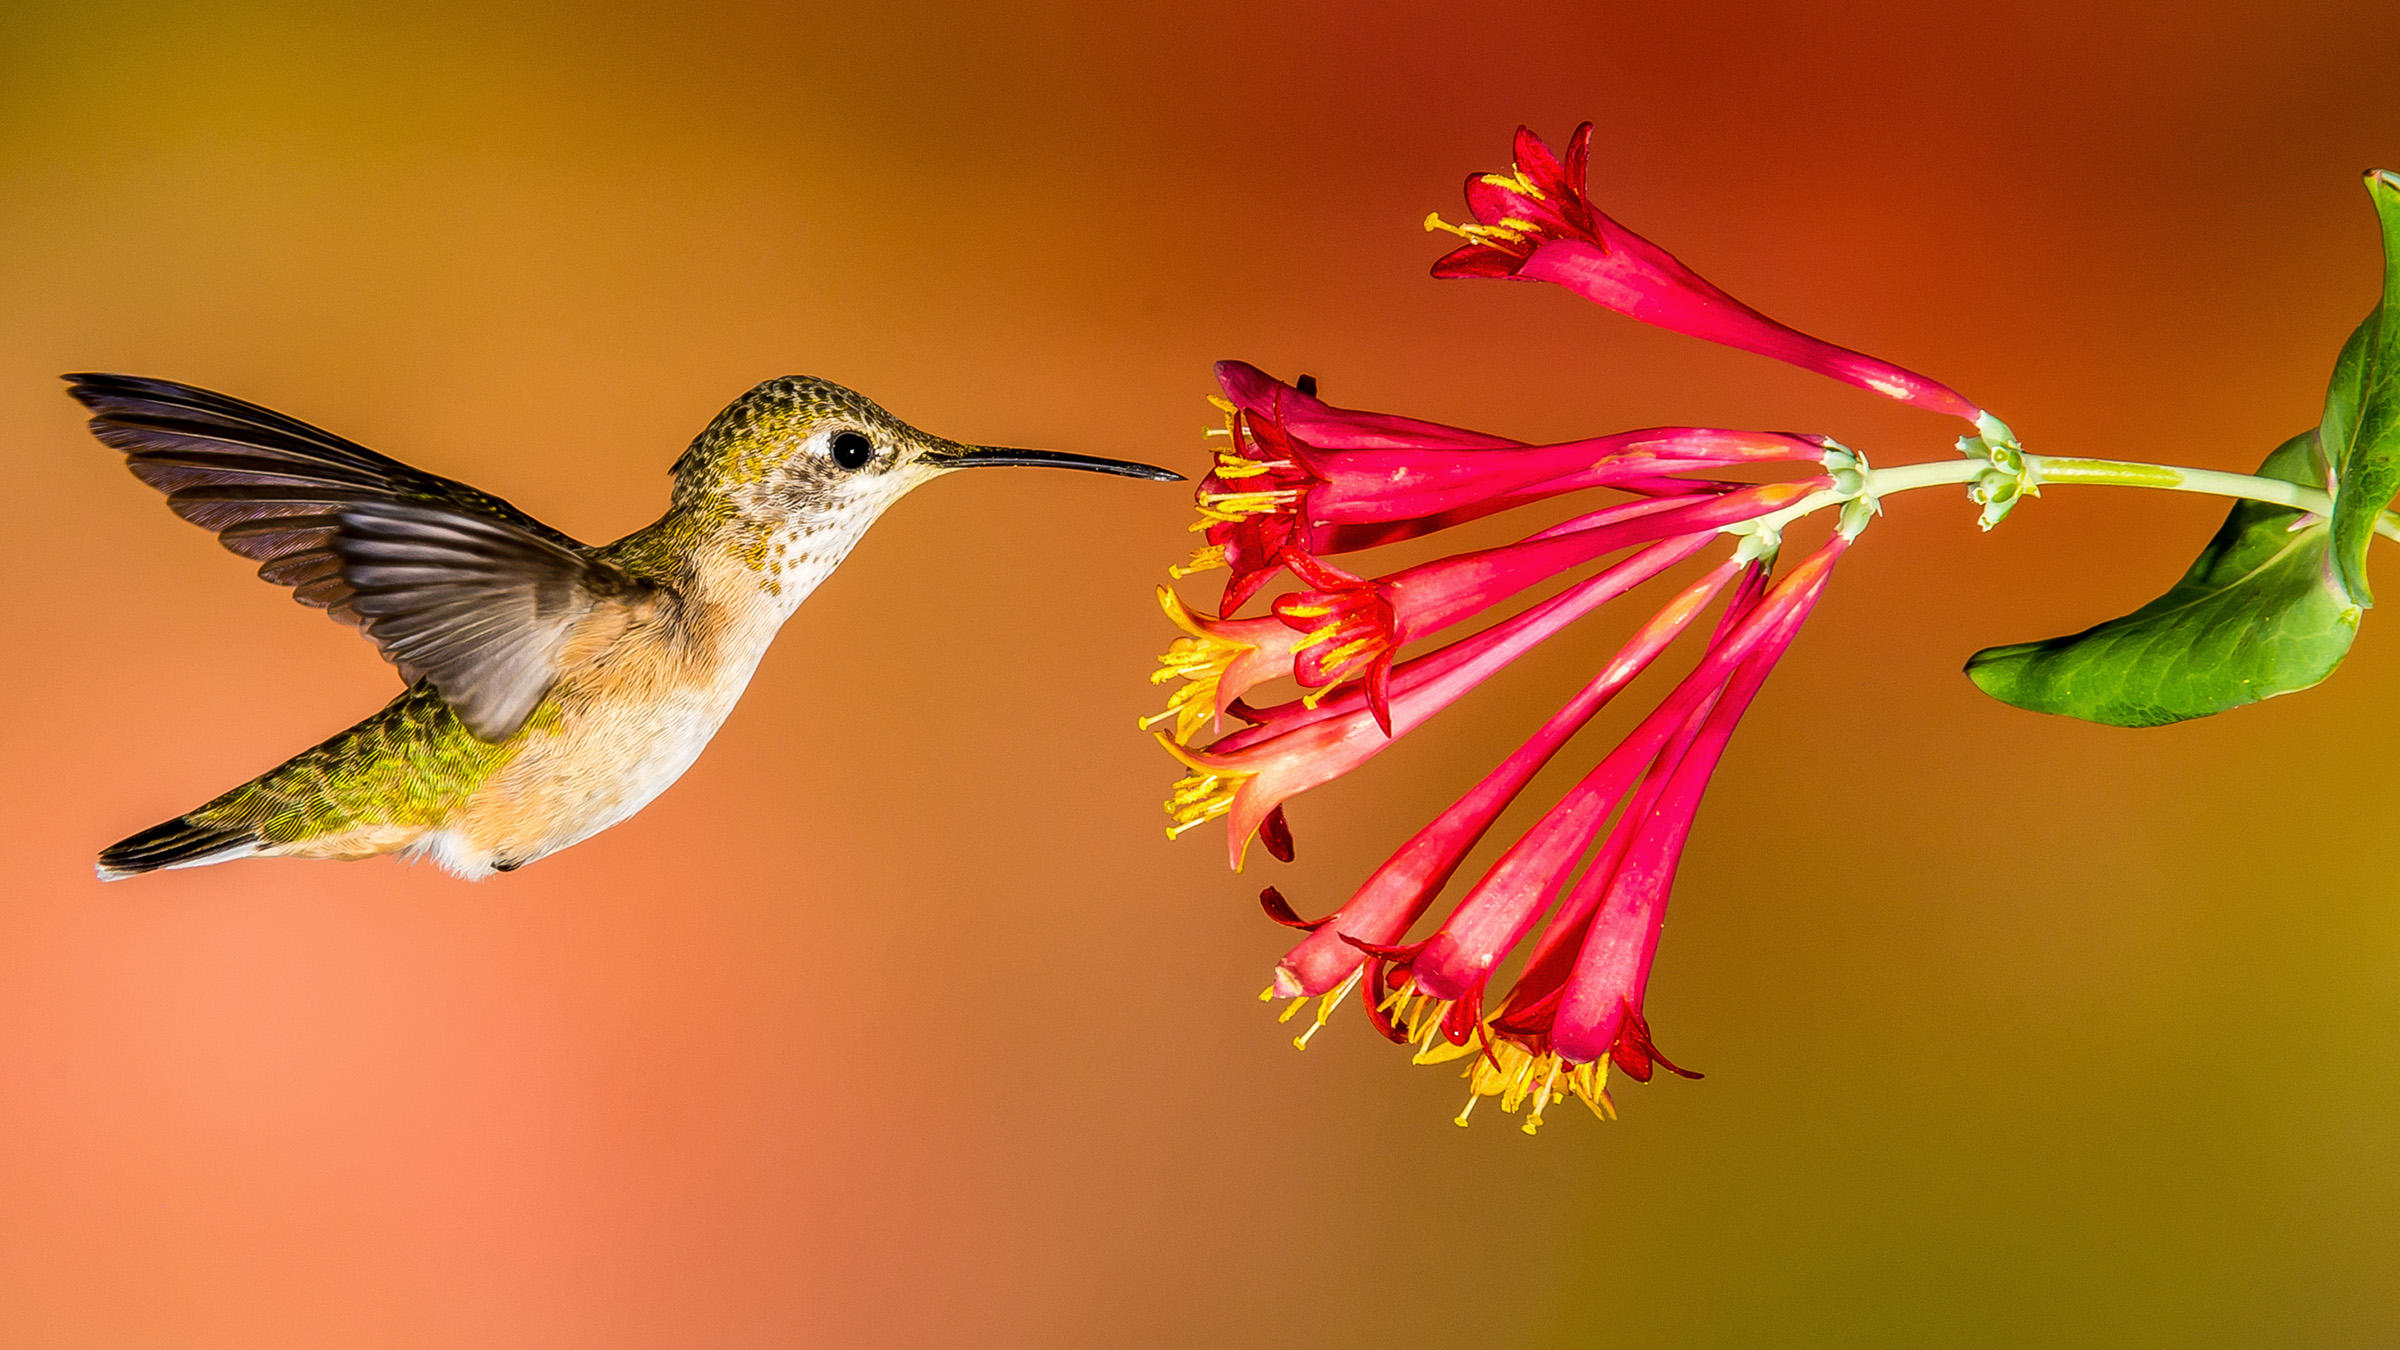 pollinators, hummingbird, flower, plants, flowers